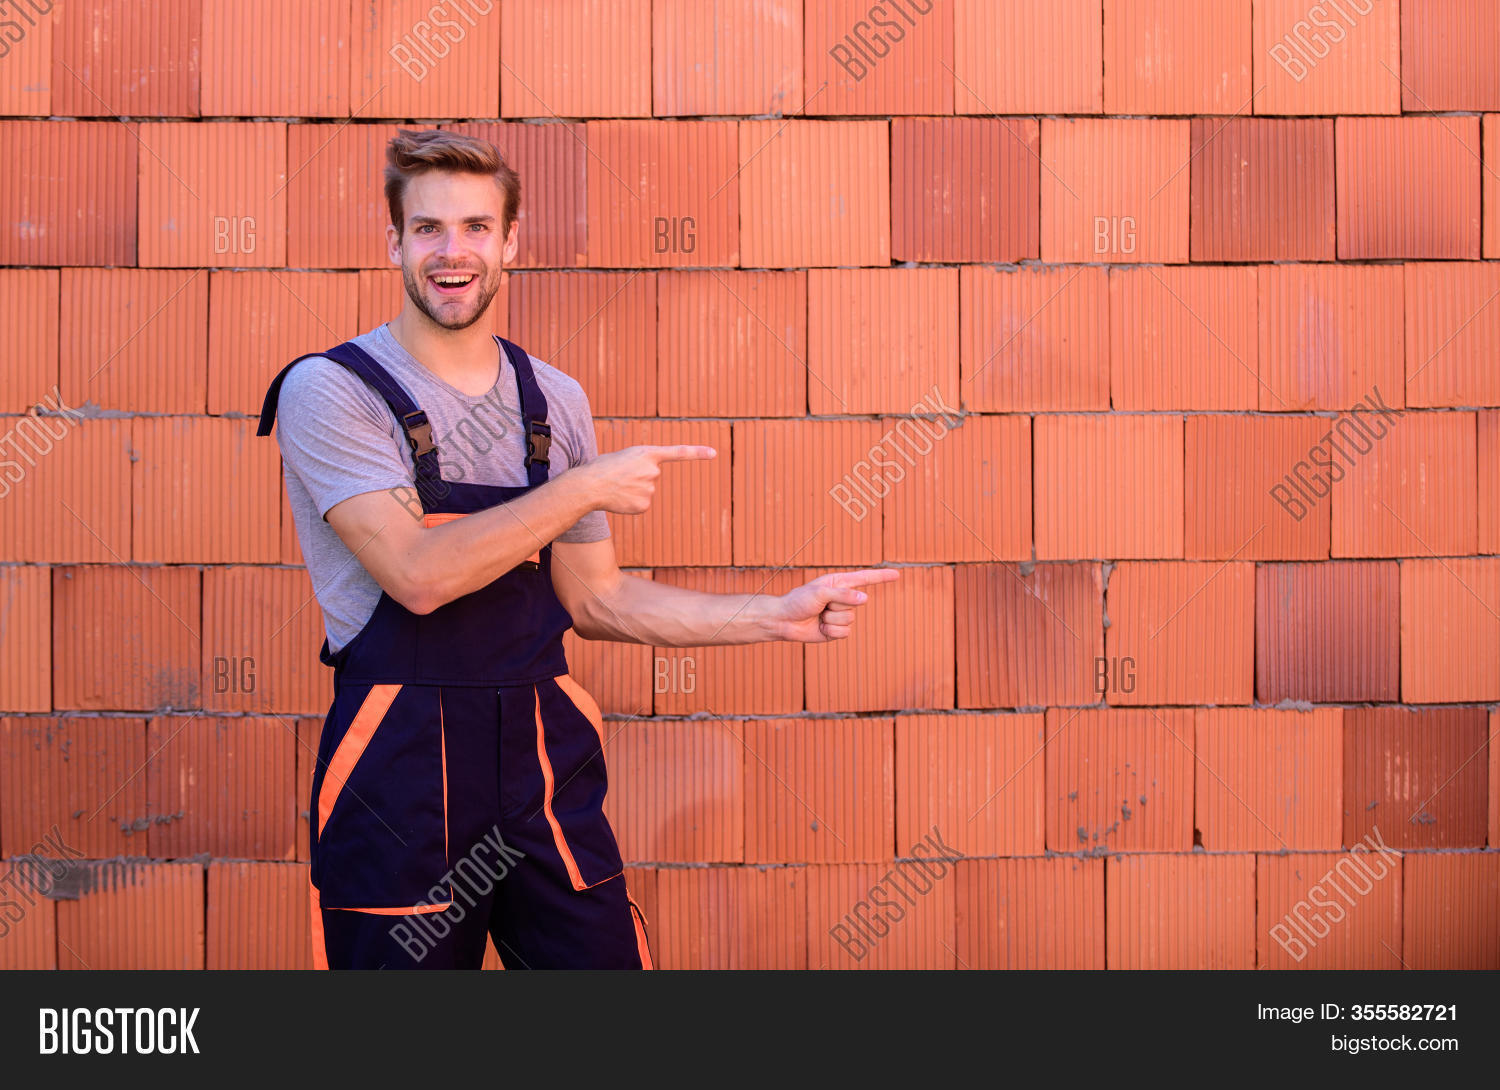 Worker Brick Wall Image Photo Free Trial Bigstock